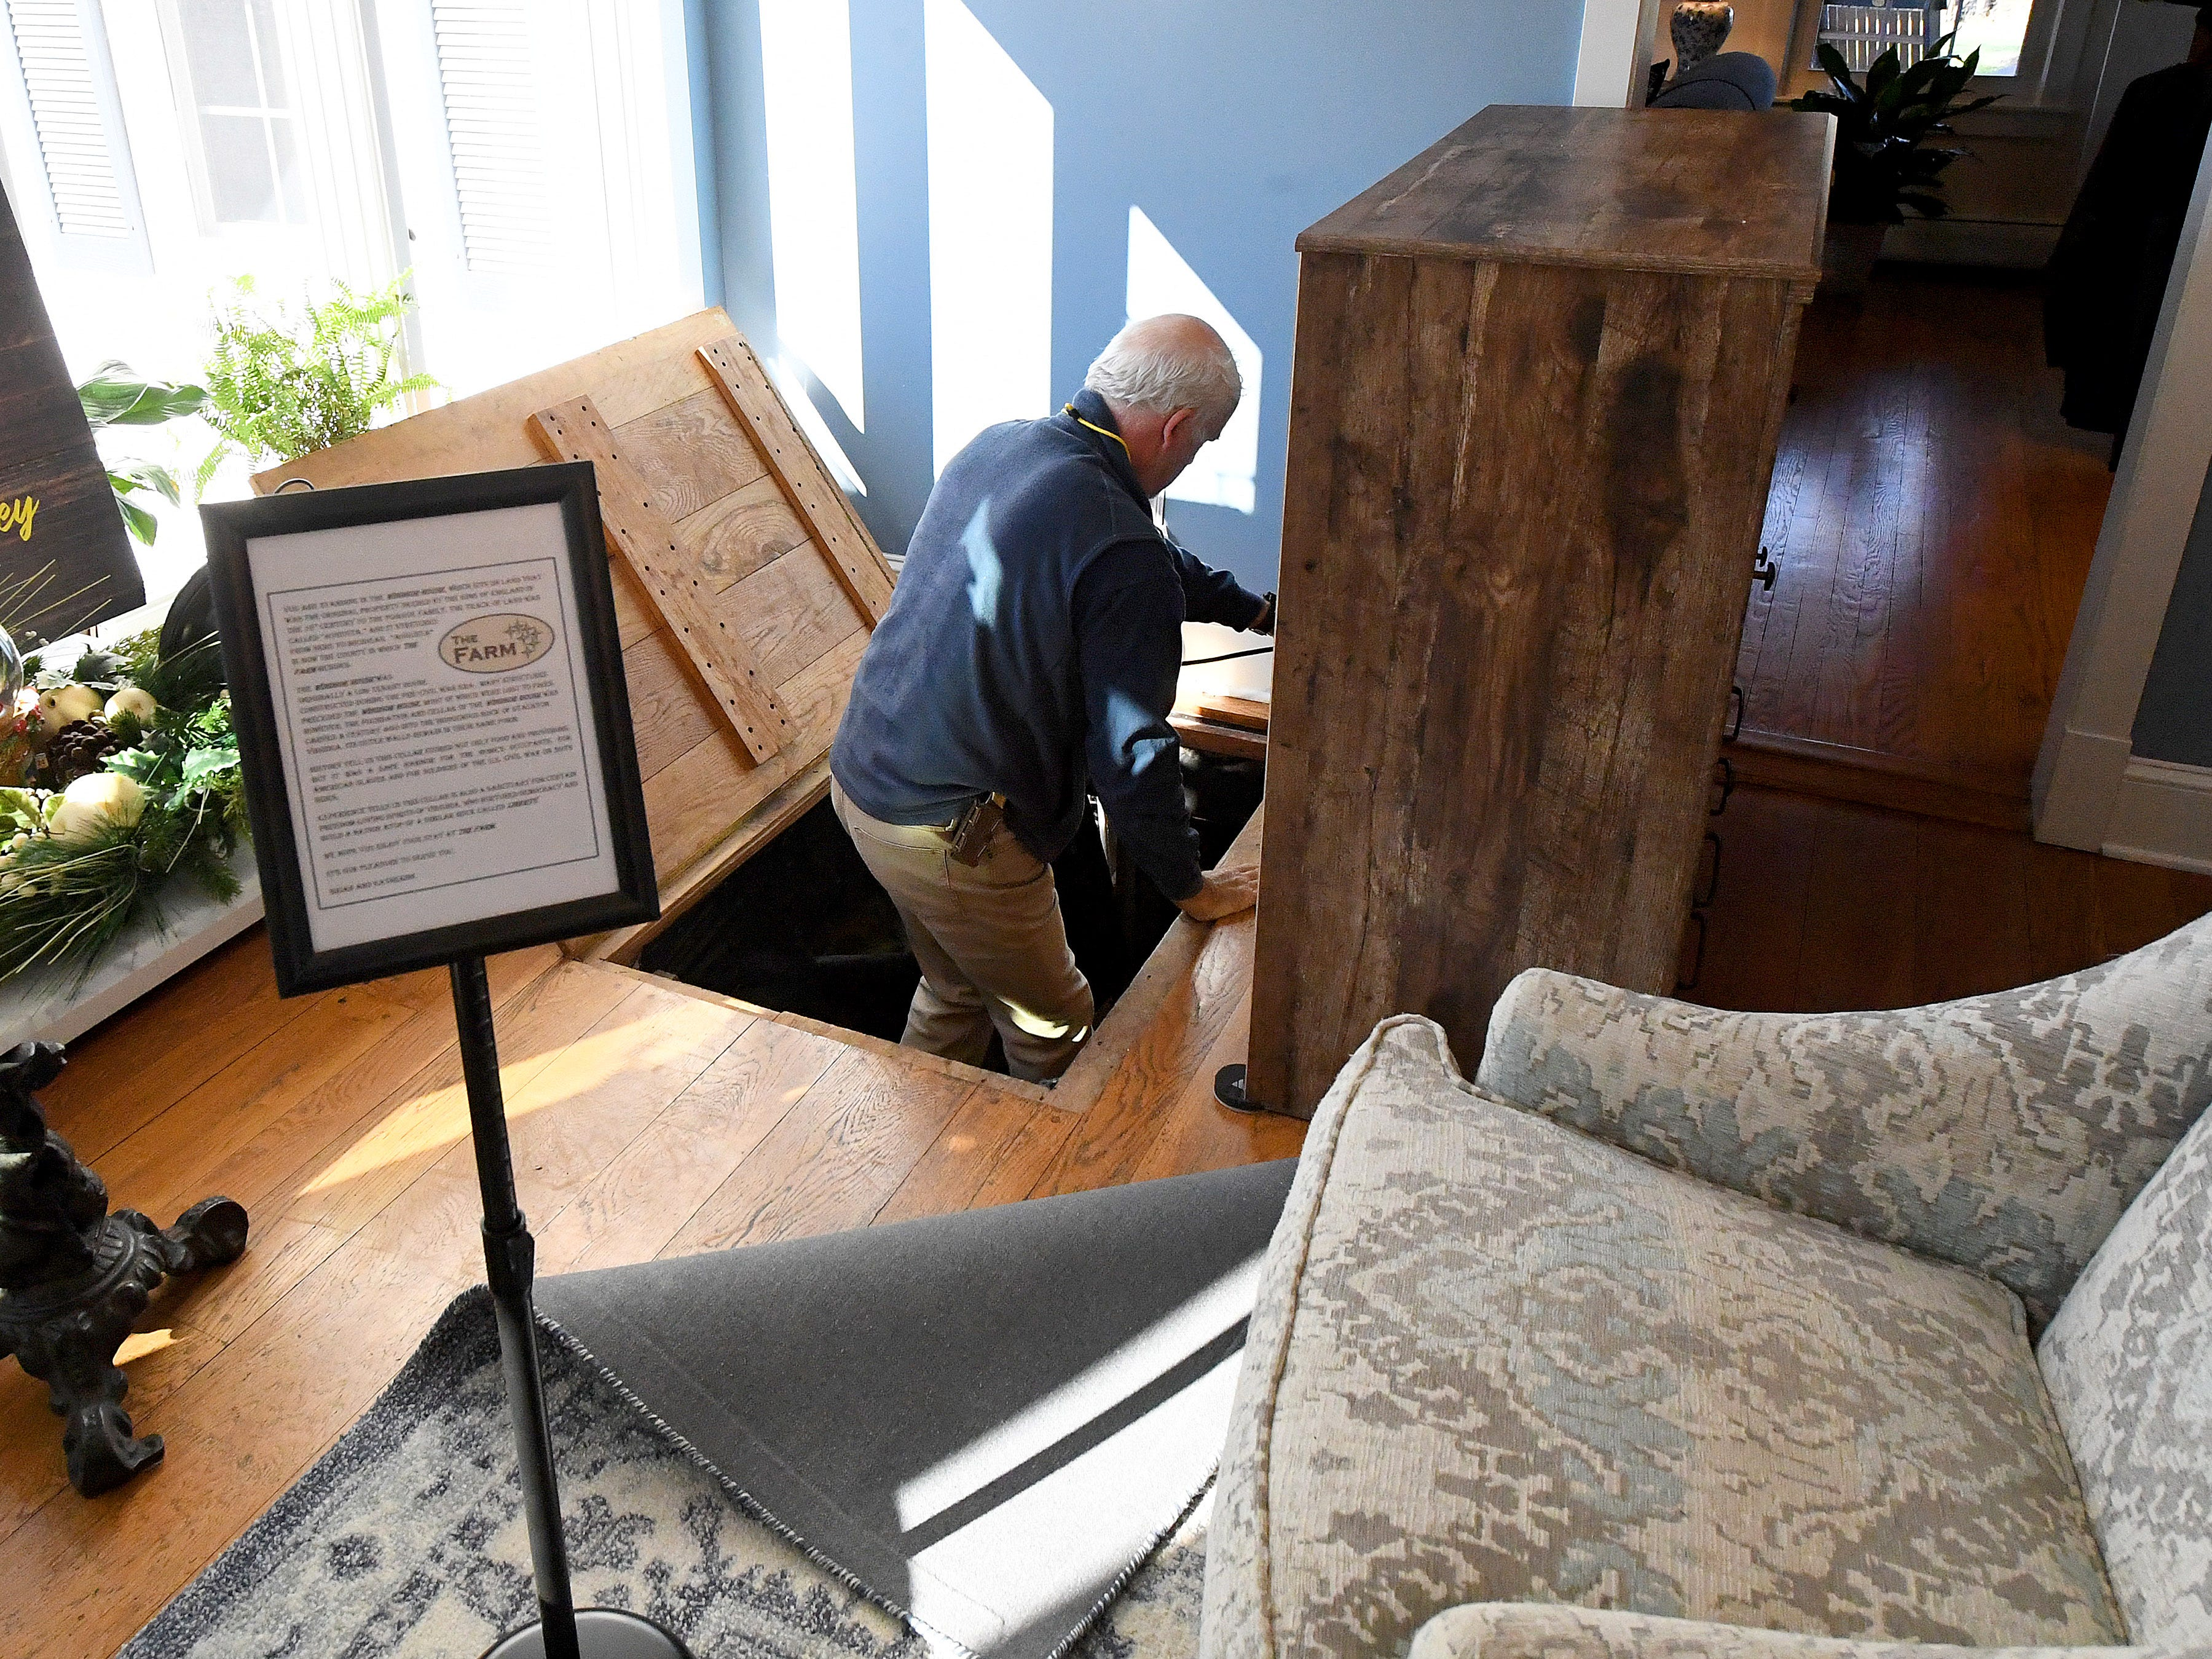 Co-owner and innkeeper Brian Westenberg descends into the normally hidden entrance of the basement at the Inn at WestShire Farms in Staunton on Wednesday, Nov. 28, 2018.